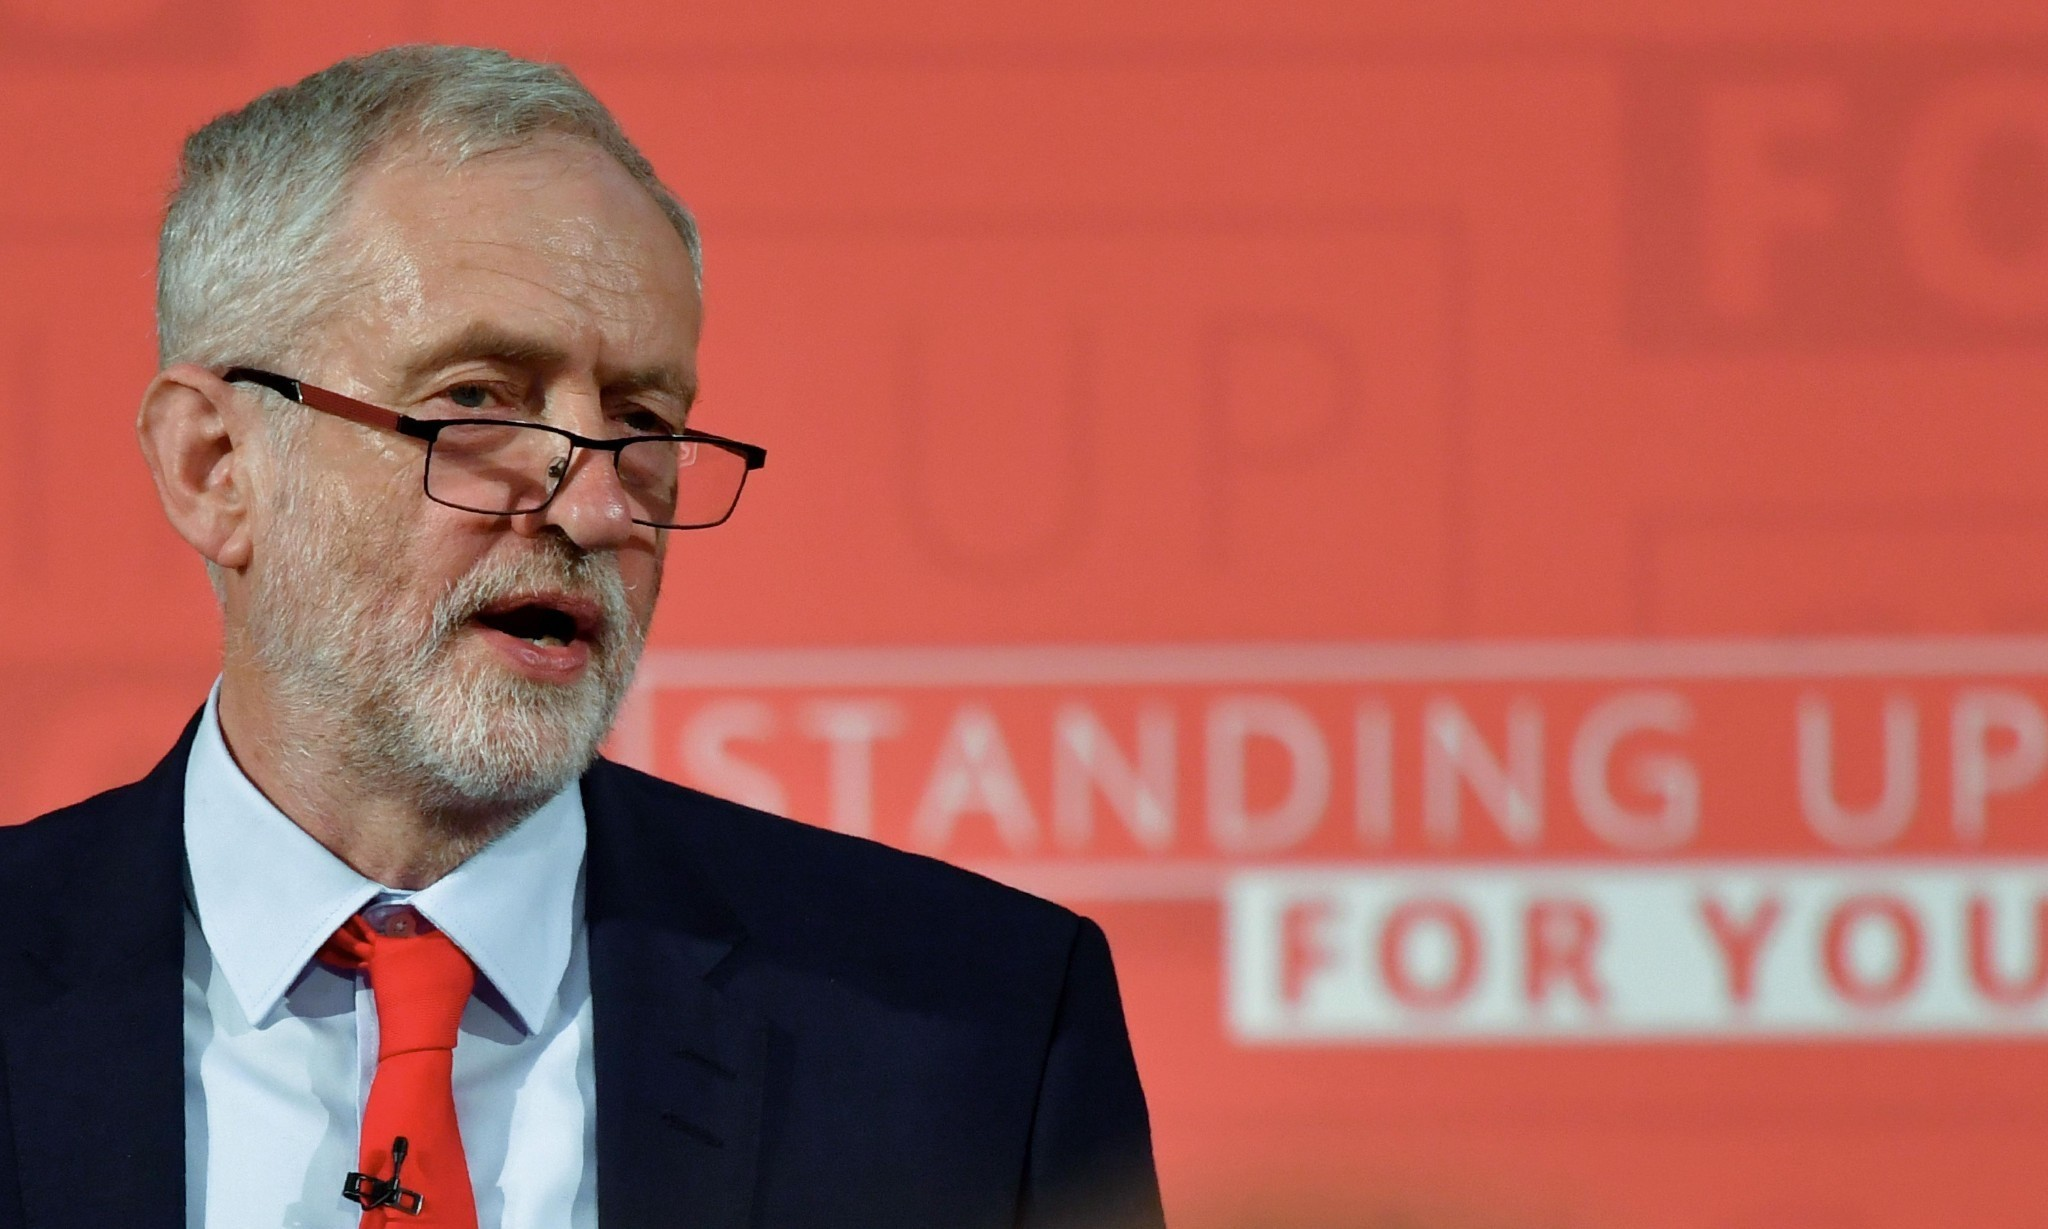 Labour focuses on pupils 'crammed into classrooms like sardines'